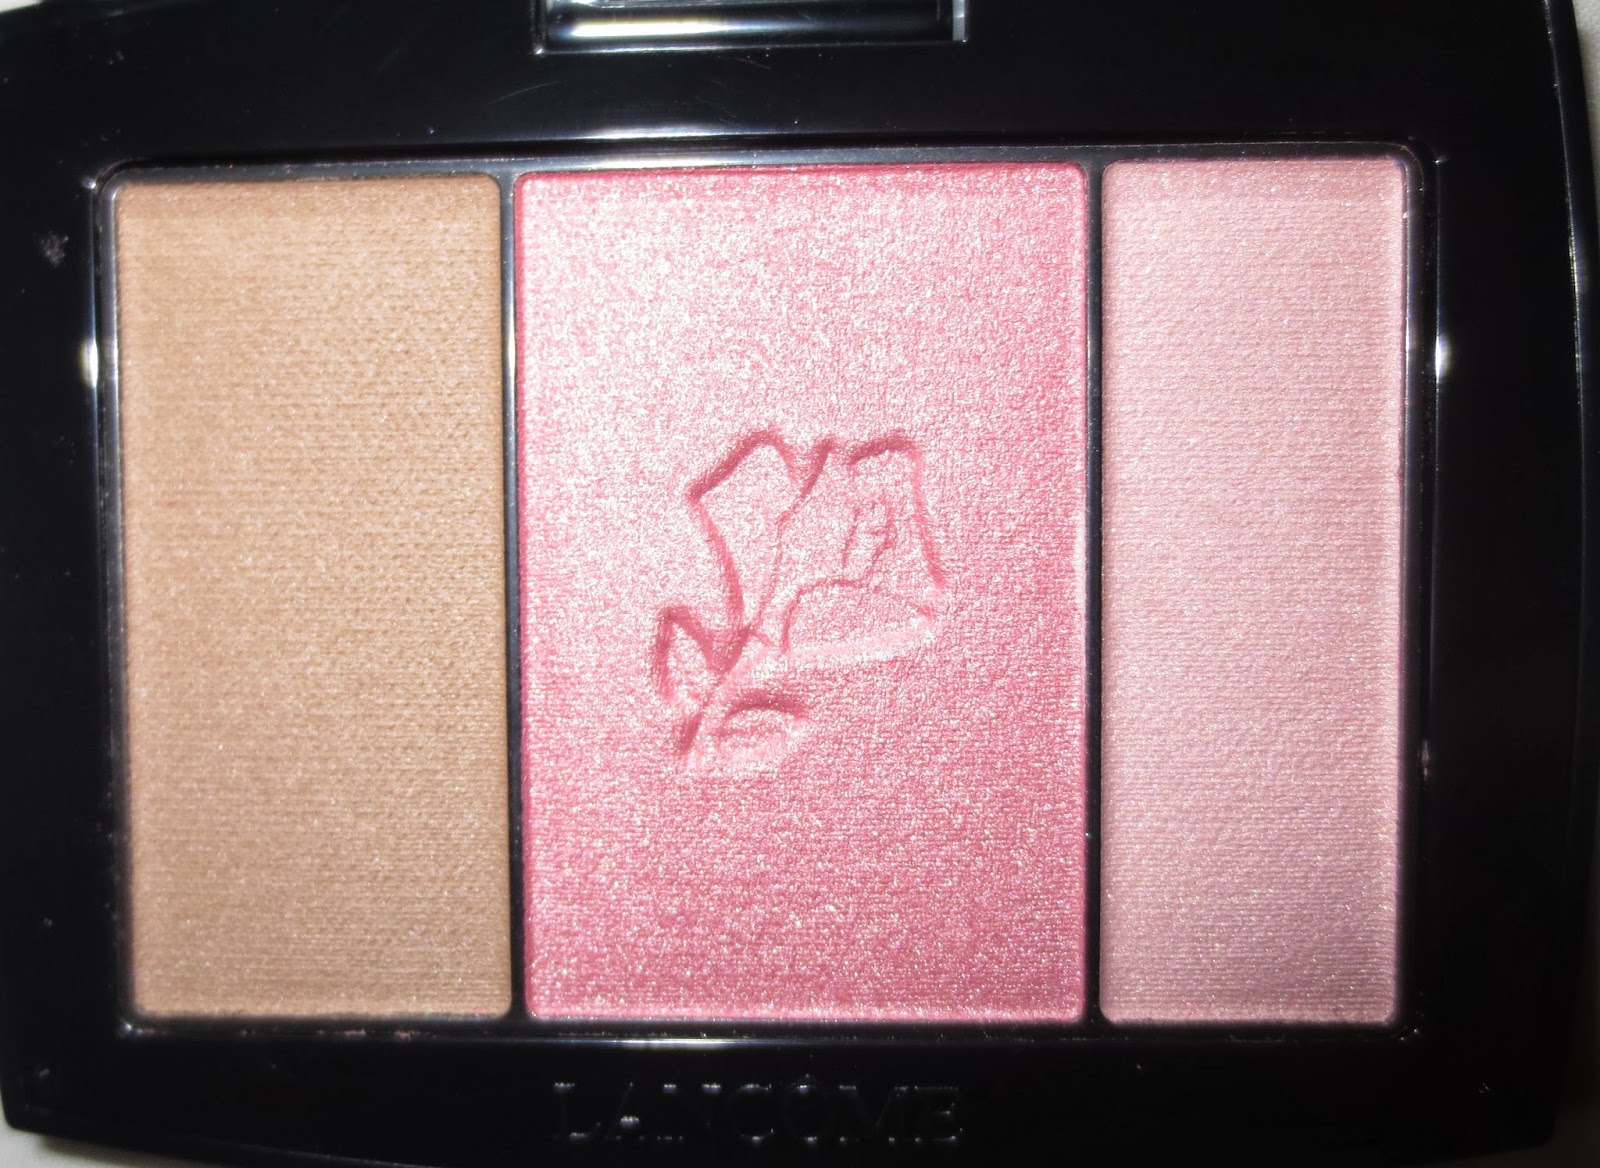 Lancome Blush Subtil Palette in 323 Rose Flush